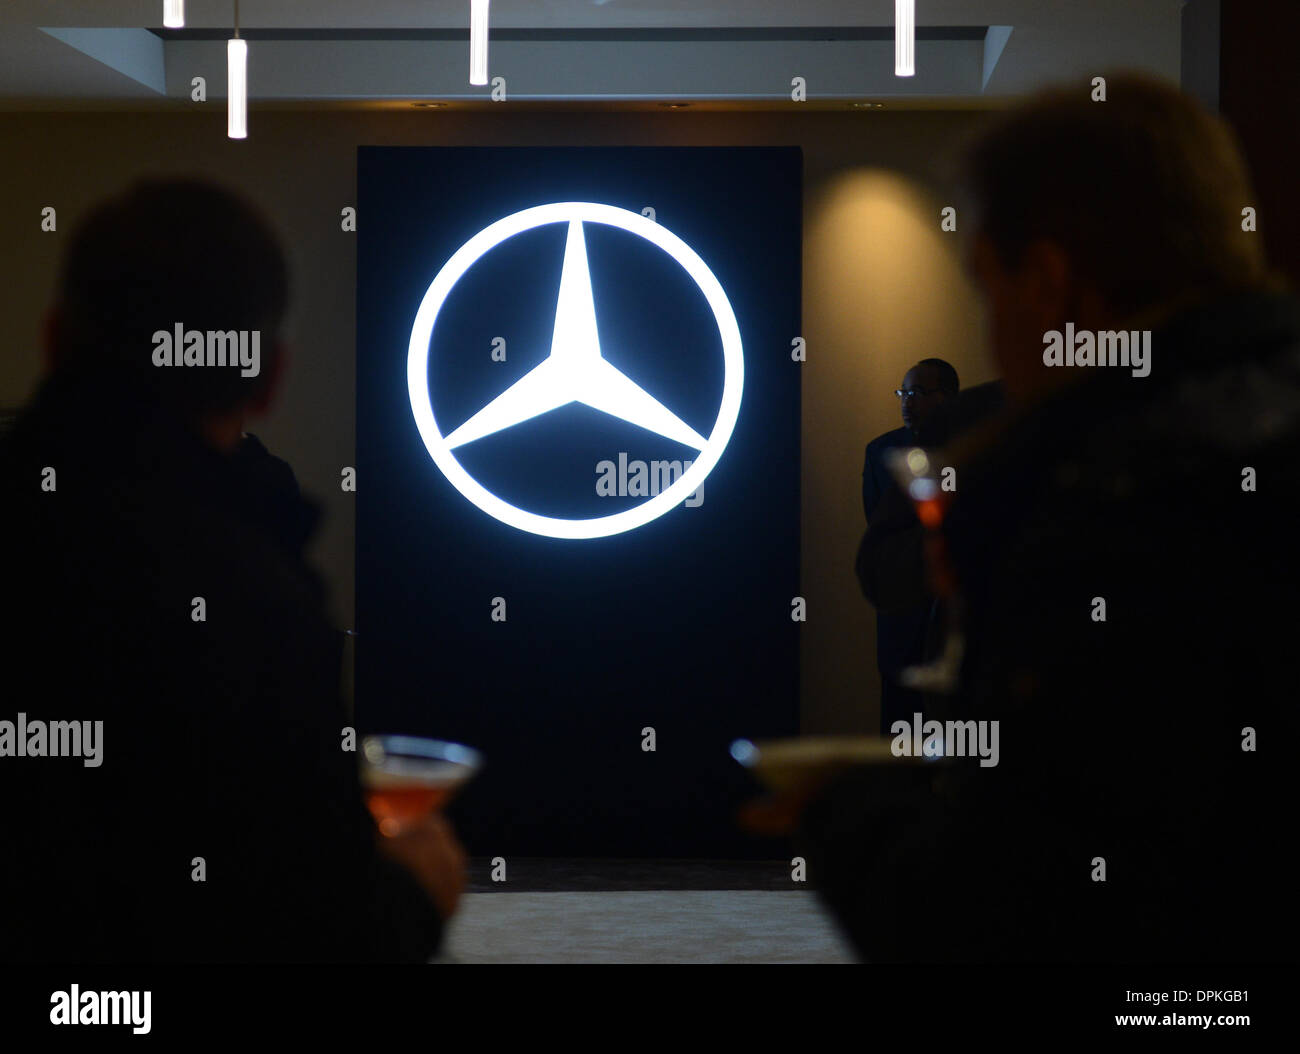 Detroit, USA. 12th Jan, 2014. The trhee-pinted star logo of Mercedes-Benz is pictured during the presentation of the new Mercedes-Benz C-Class in a hotel on the eve of the first press day of the North American International Auto Show (NAIAS) at Cobo Center Detroit in Detroit, USA, 12 January 2014. NAIAS will run from 13 till 26 January 2014, at first it will only be open for the press and car traders, later for the public as well. Photo: ULI DECK/DPA/Alamy Live News - Stock Image